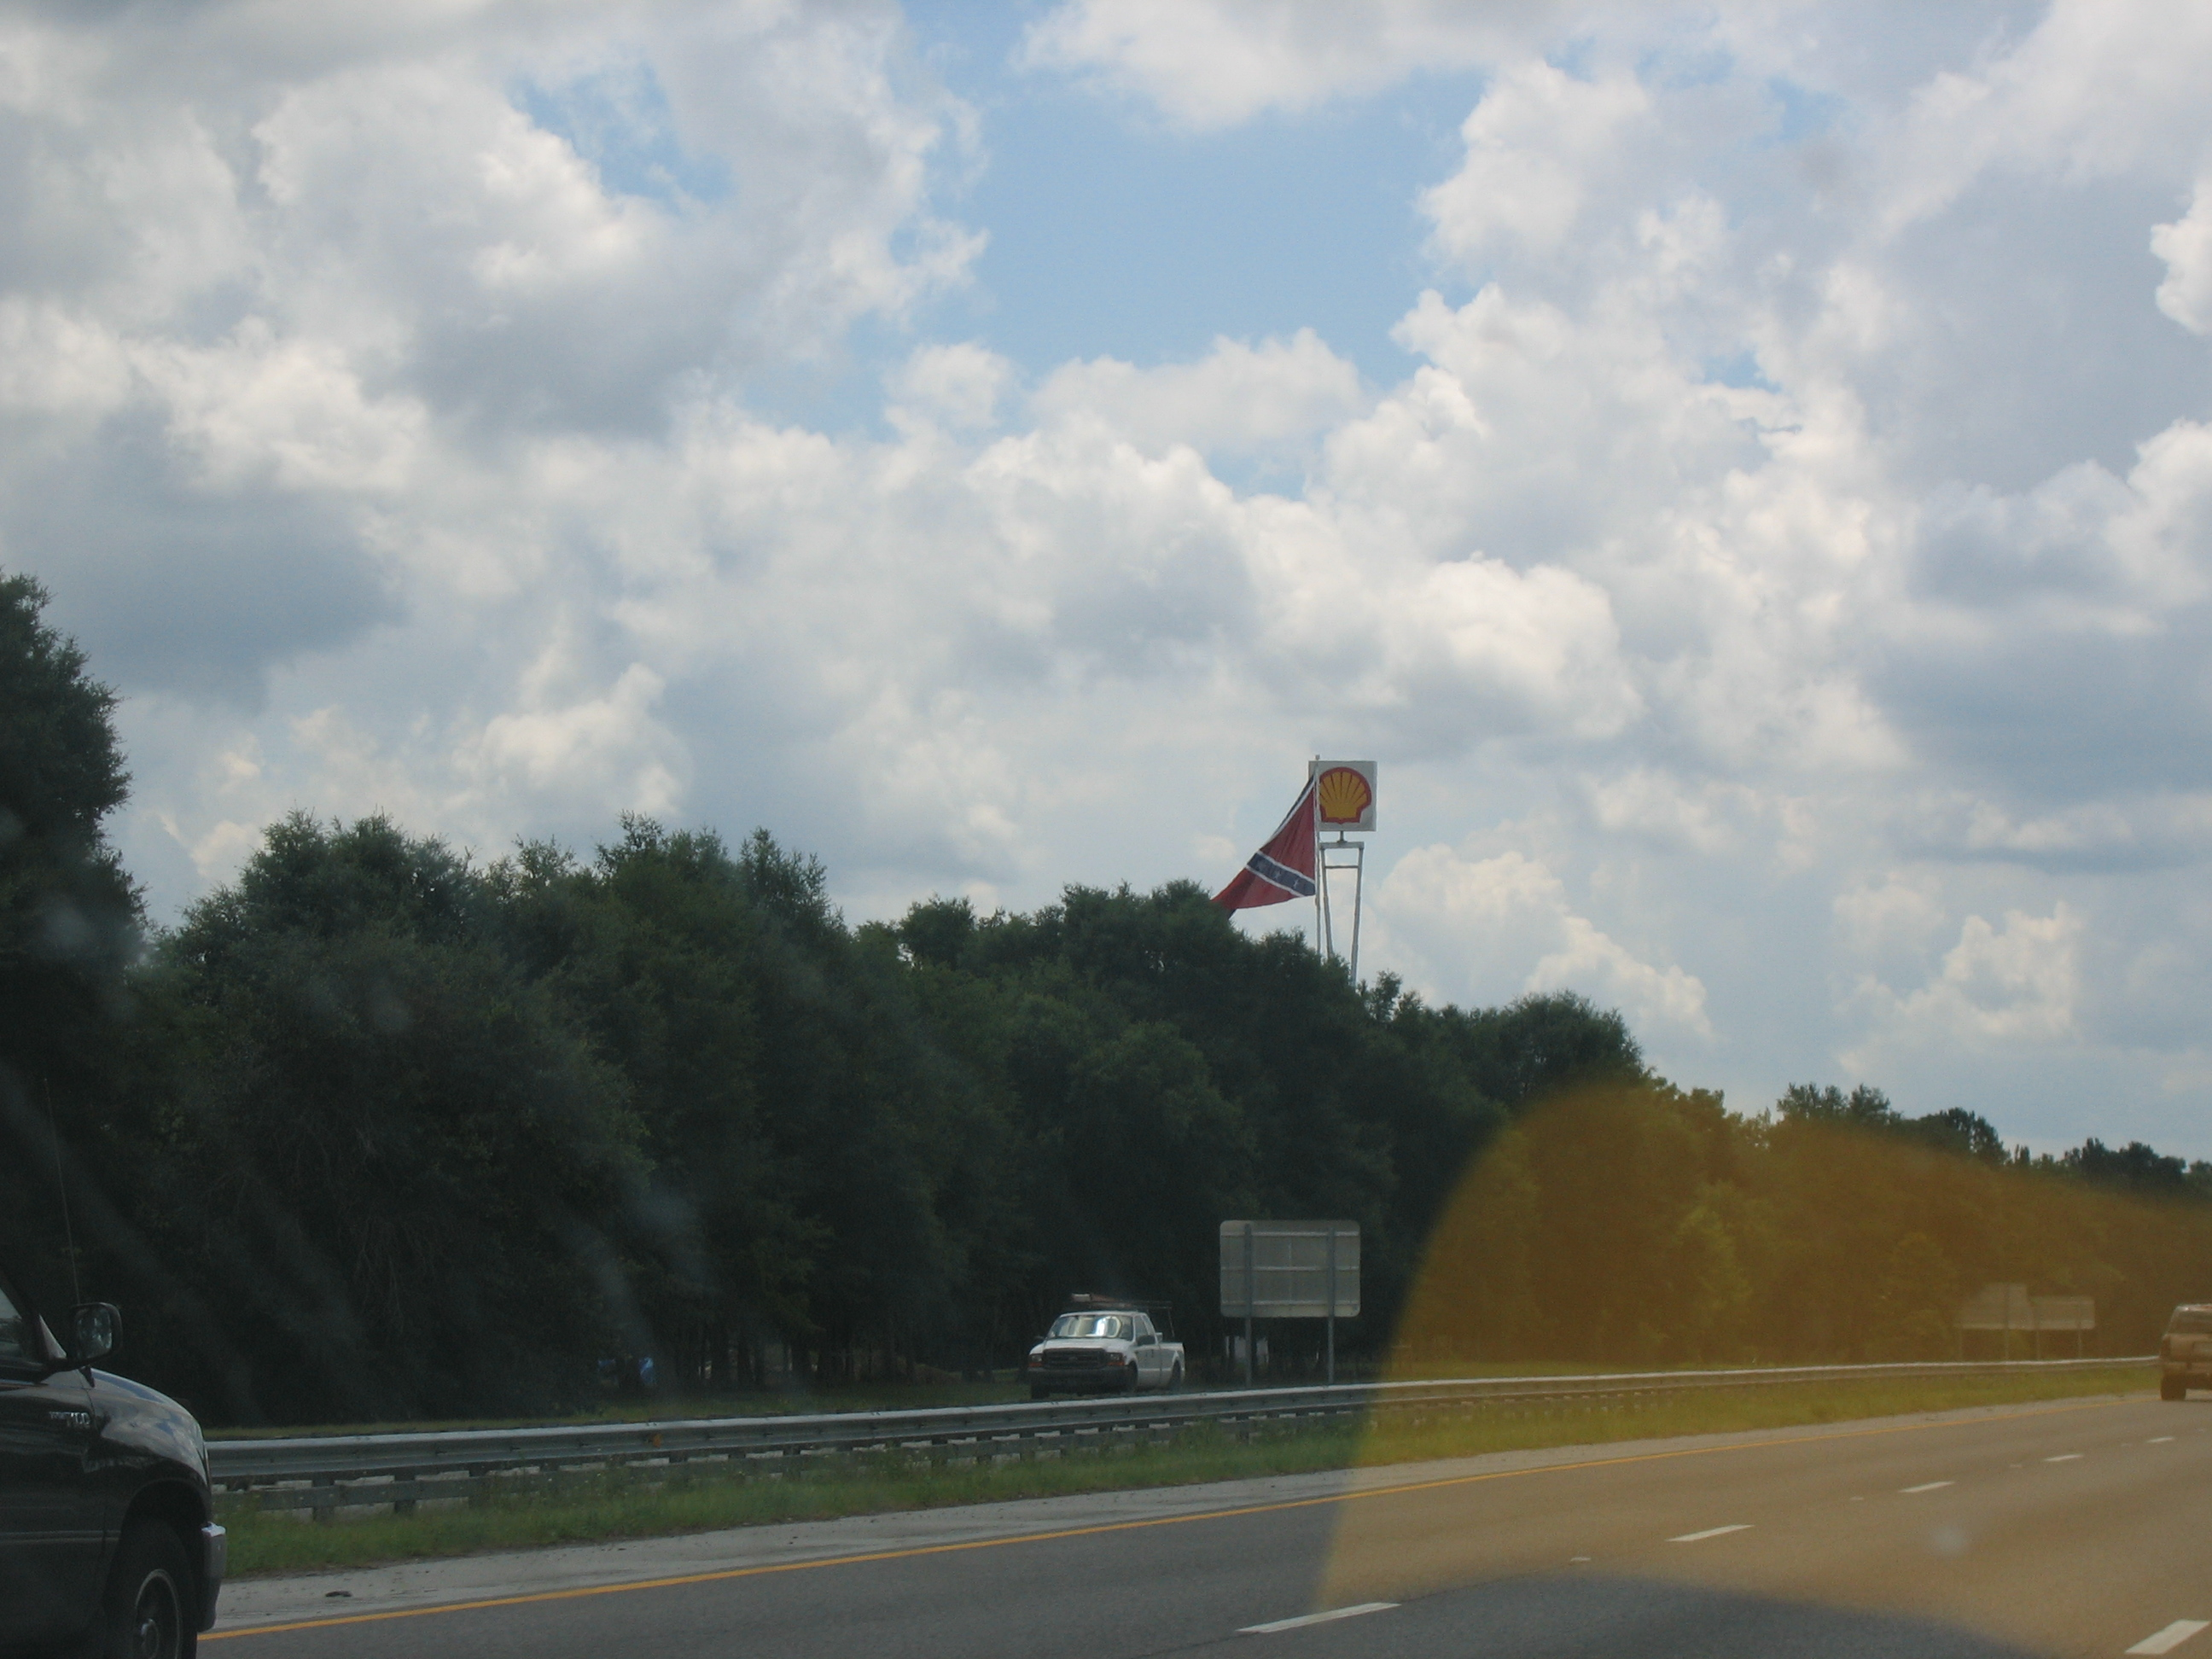 IMG_0480.jpg - On road to Tampa Bay